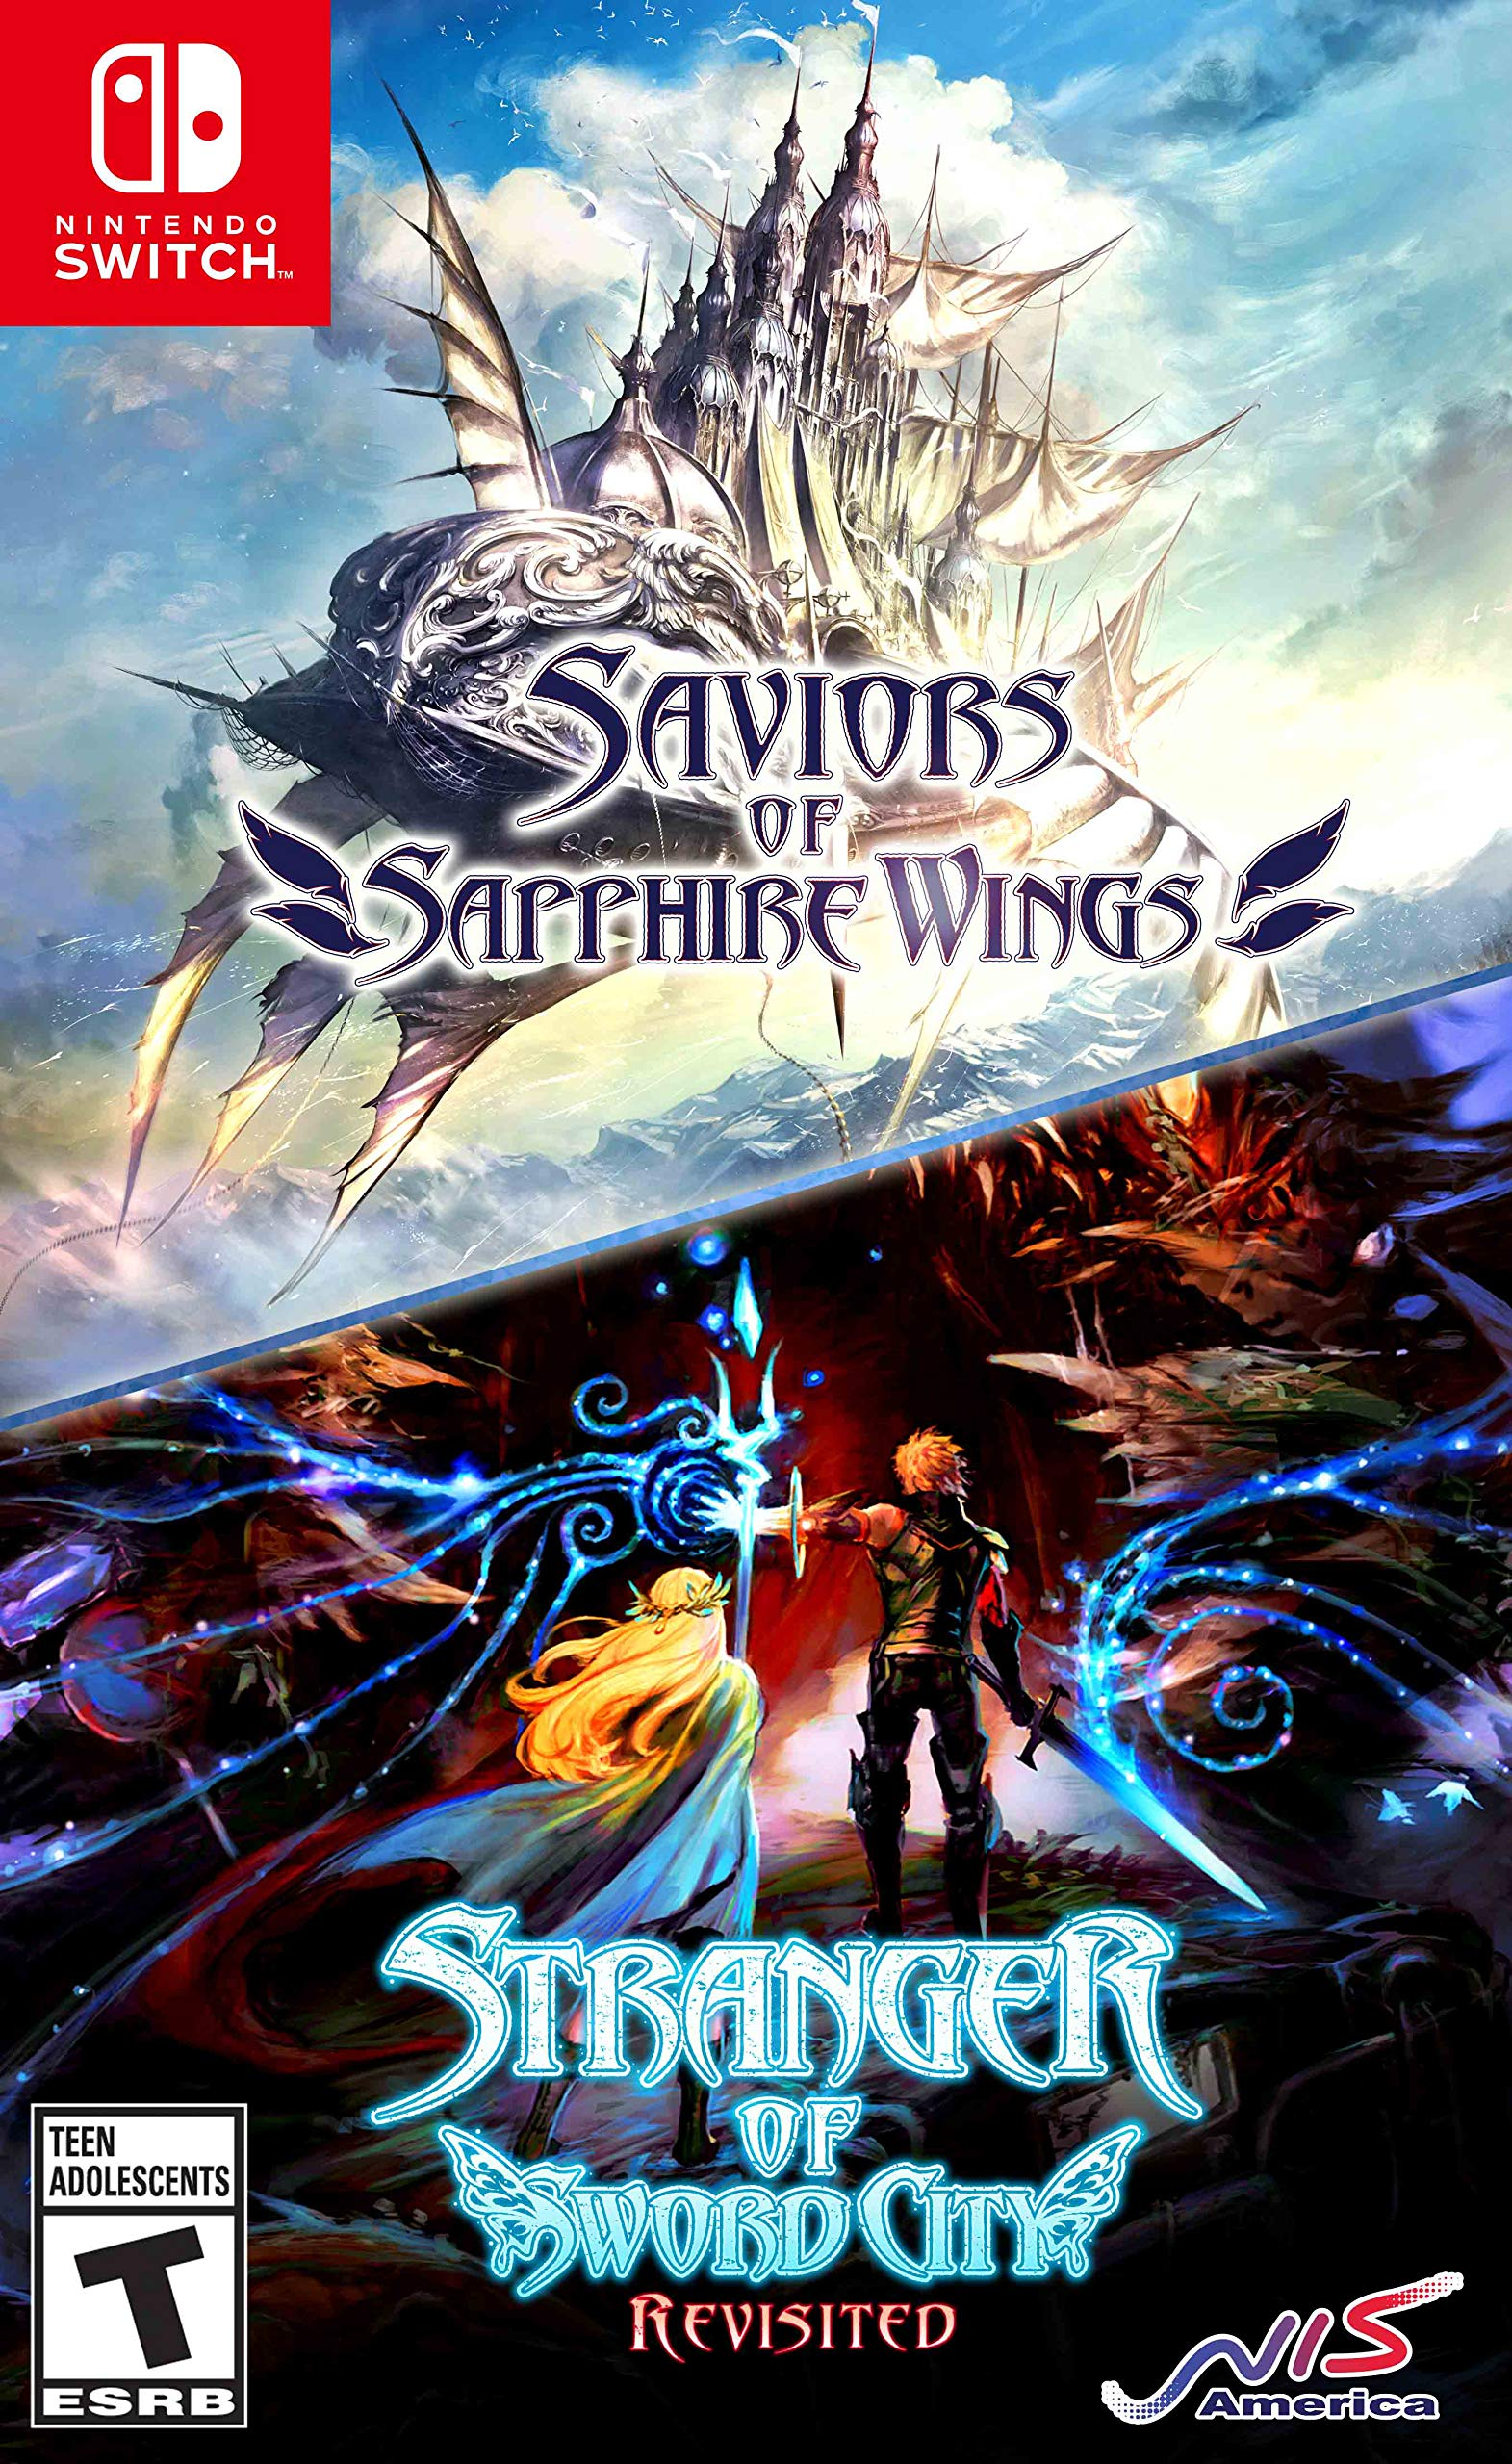 Poster. Saviors of Sapphire Wings / Stranger of Sword City Revisited